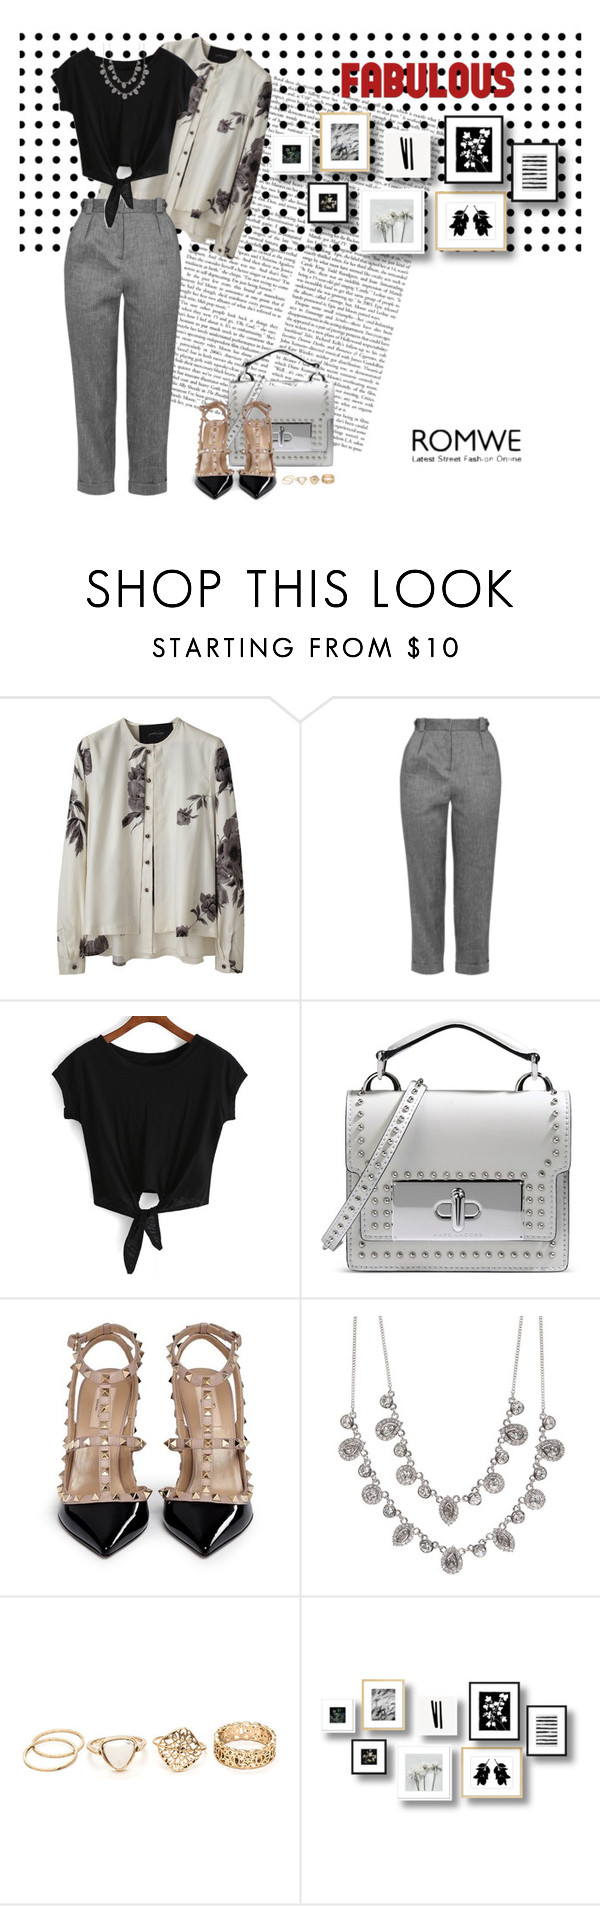 """Knotted Crop Black T-shirt"" by ellyandeddy-mendo ❤ liked on Polyvore featuring Rachel Comey, Topshop, Marc Jacobs, Valentino and Givenchy"